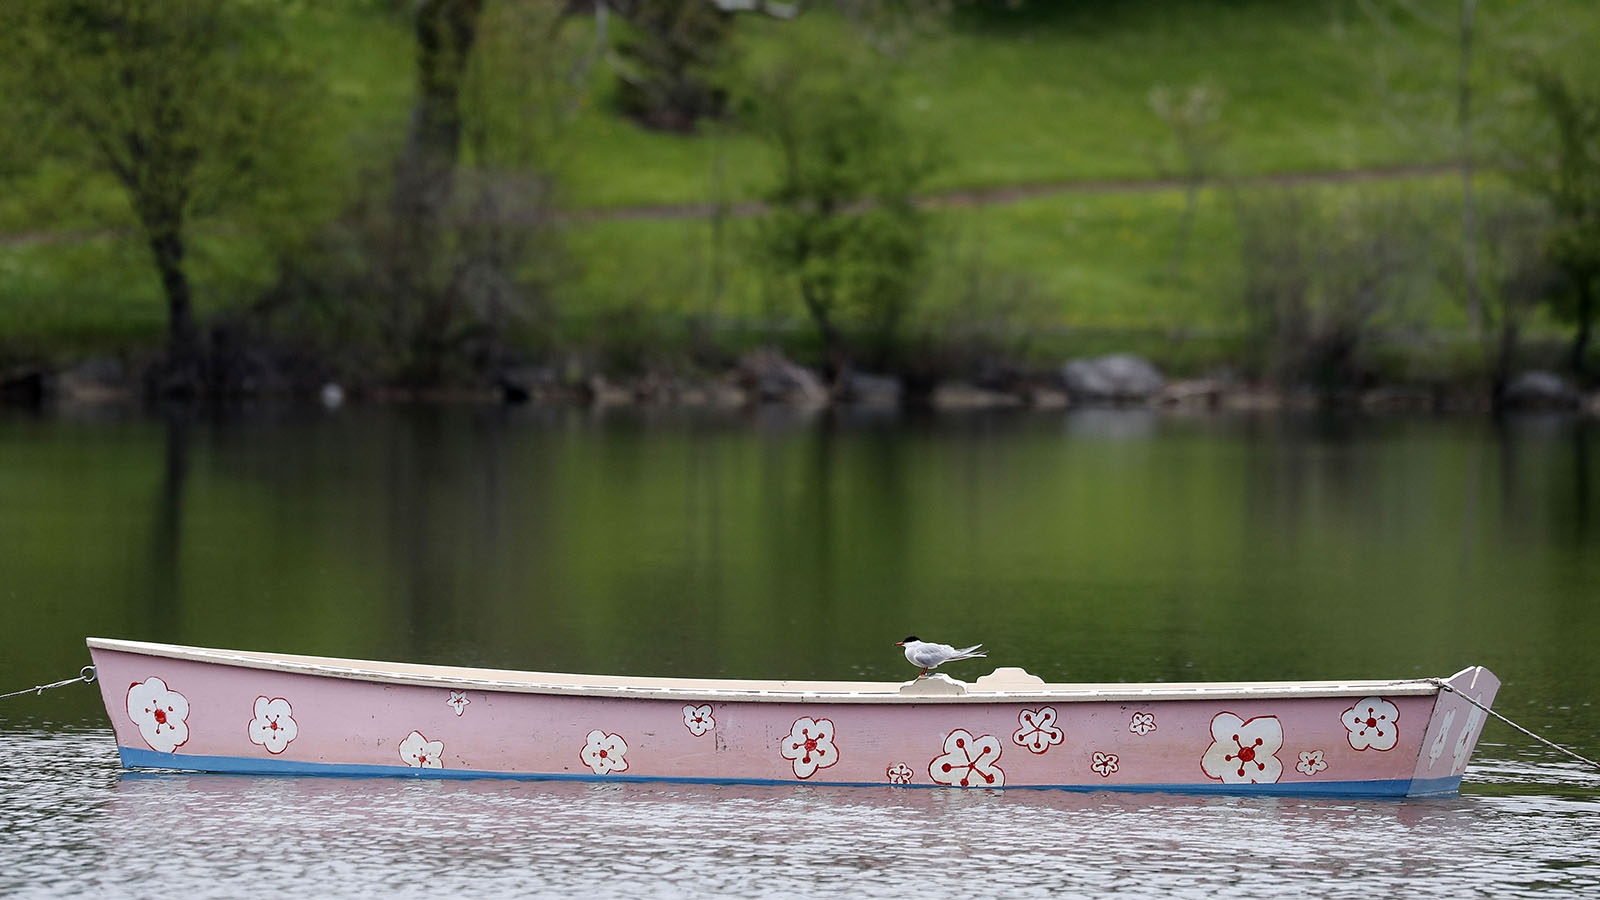 Day 137: May 17, 2018 - A bird rests on a boat at Hoyt Lake in Buffalo.